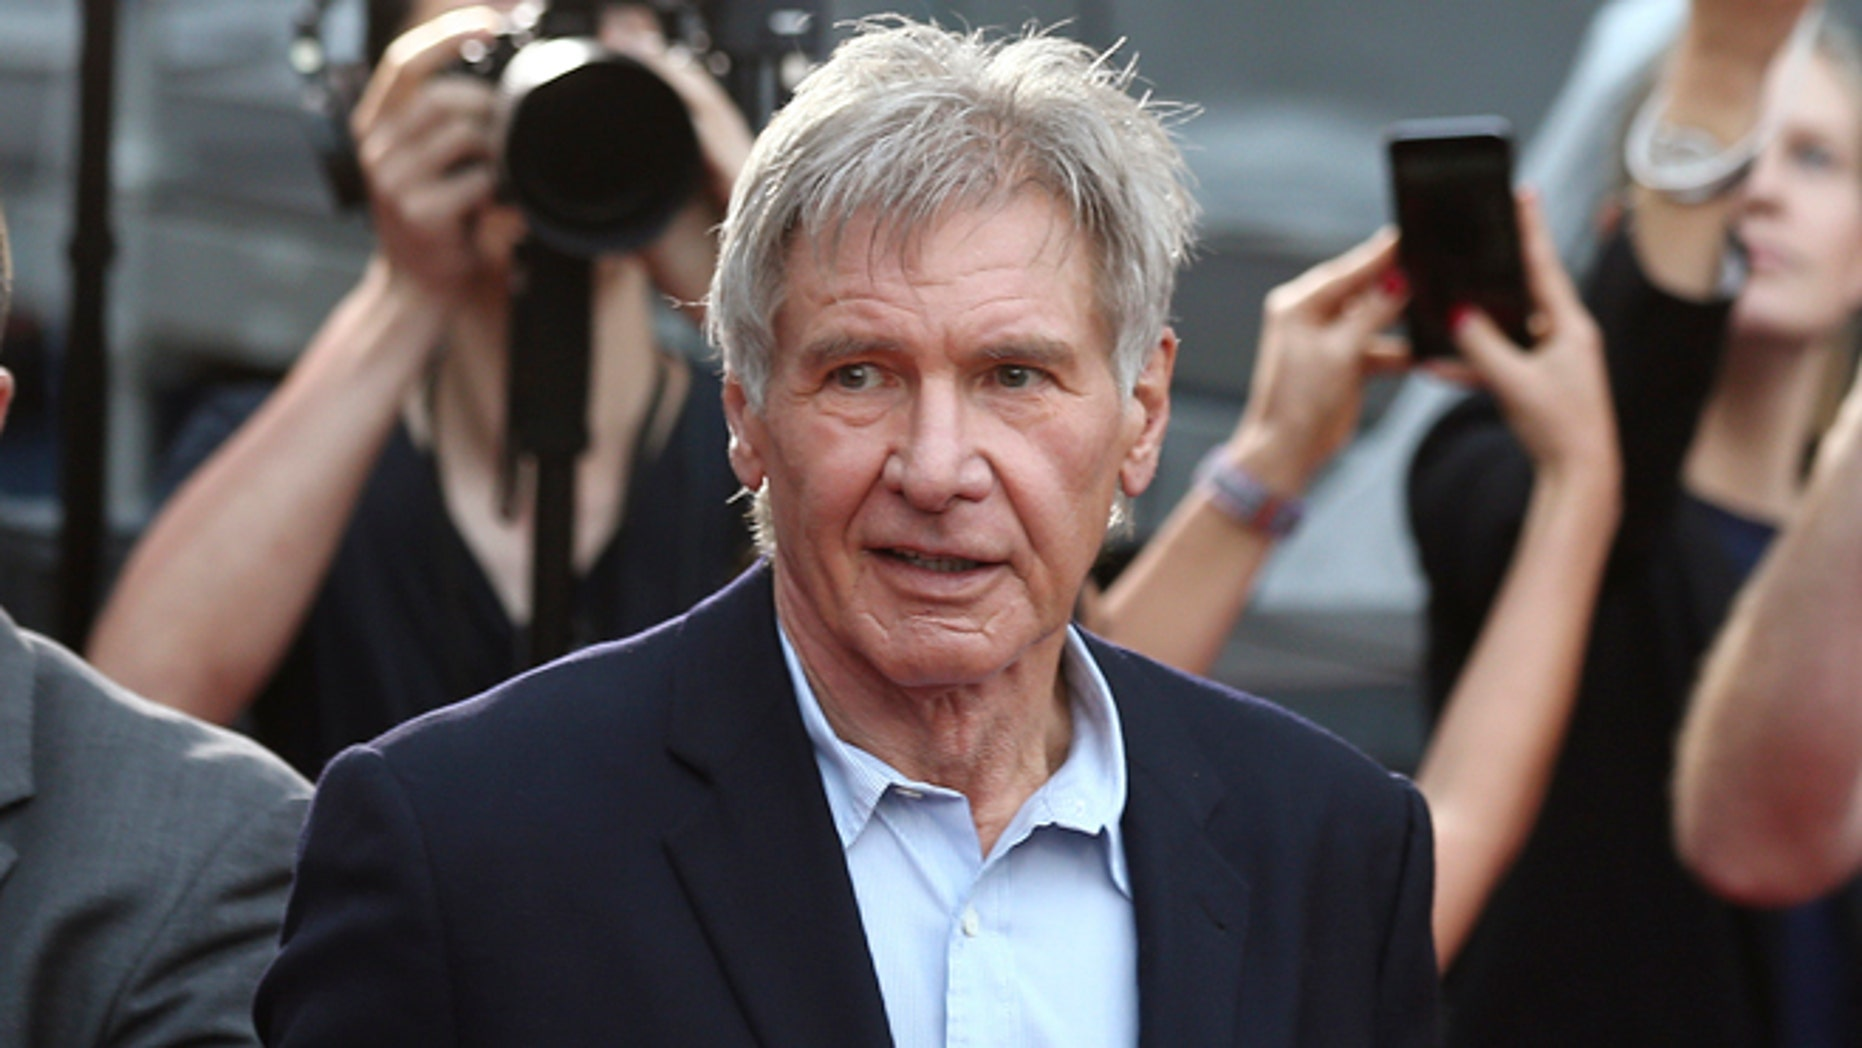 Harrison Ford told an air traffic controller that he was distracted when he flew over a plane.